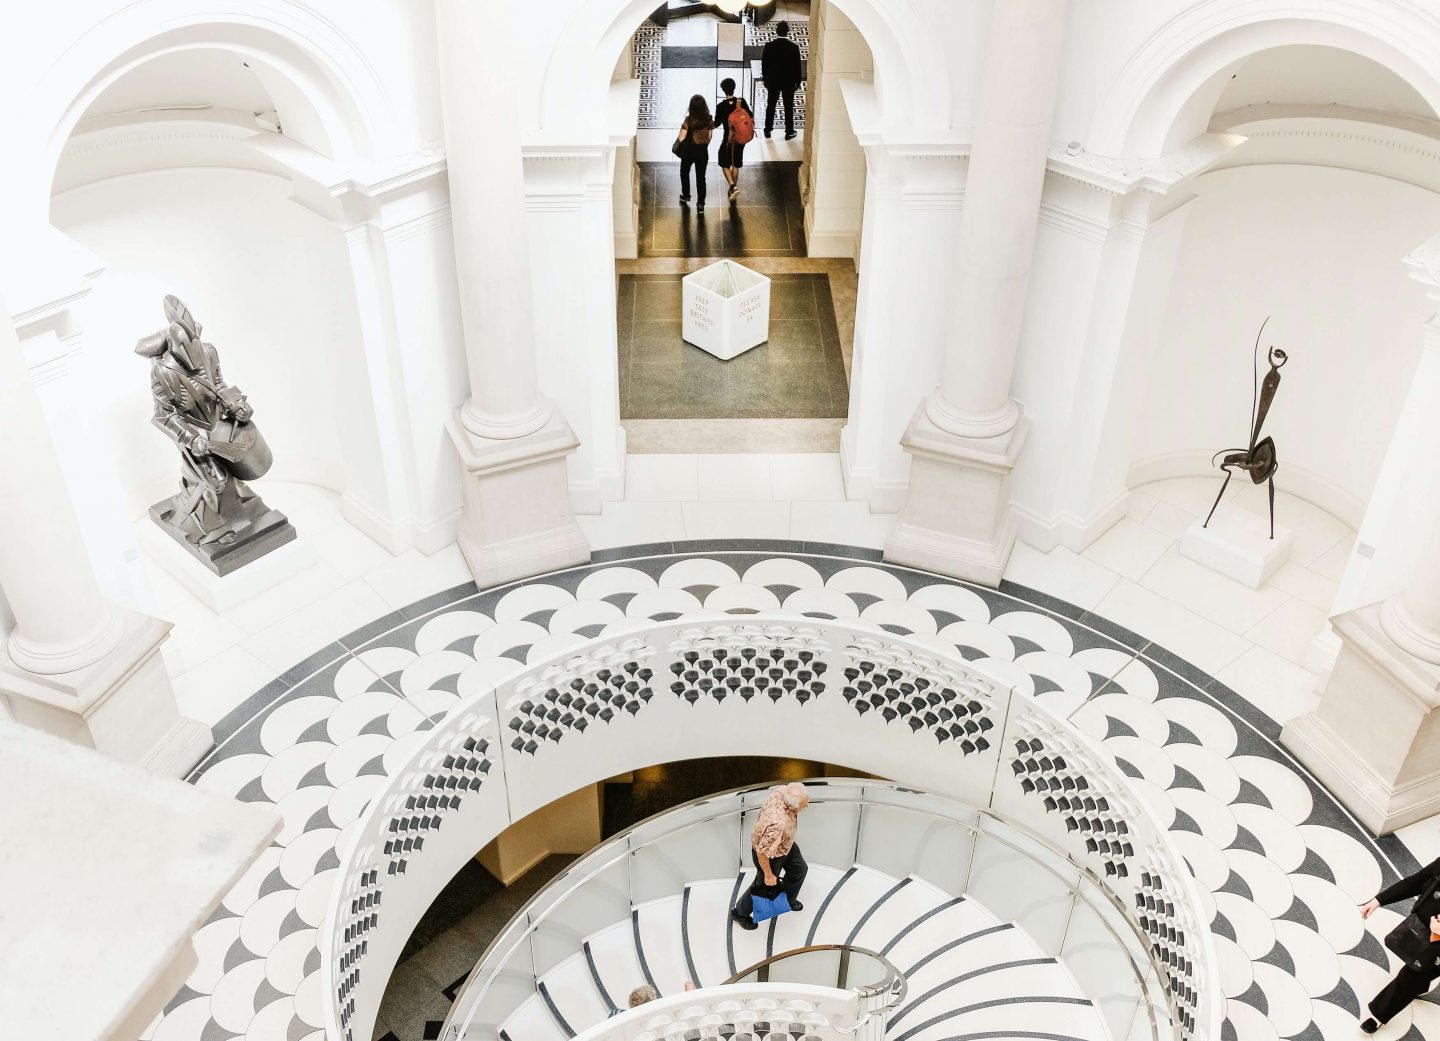 Spiral Staircase with artwork at Tate Britain London